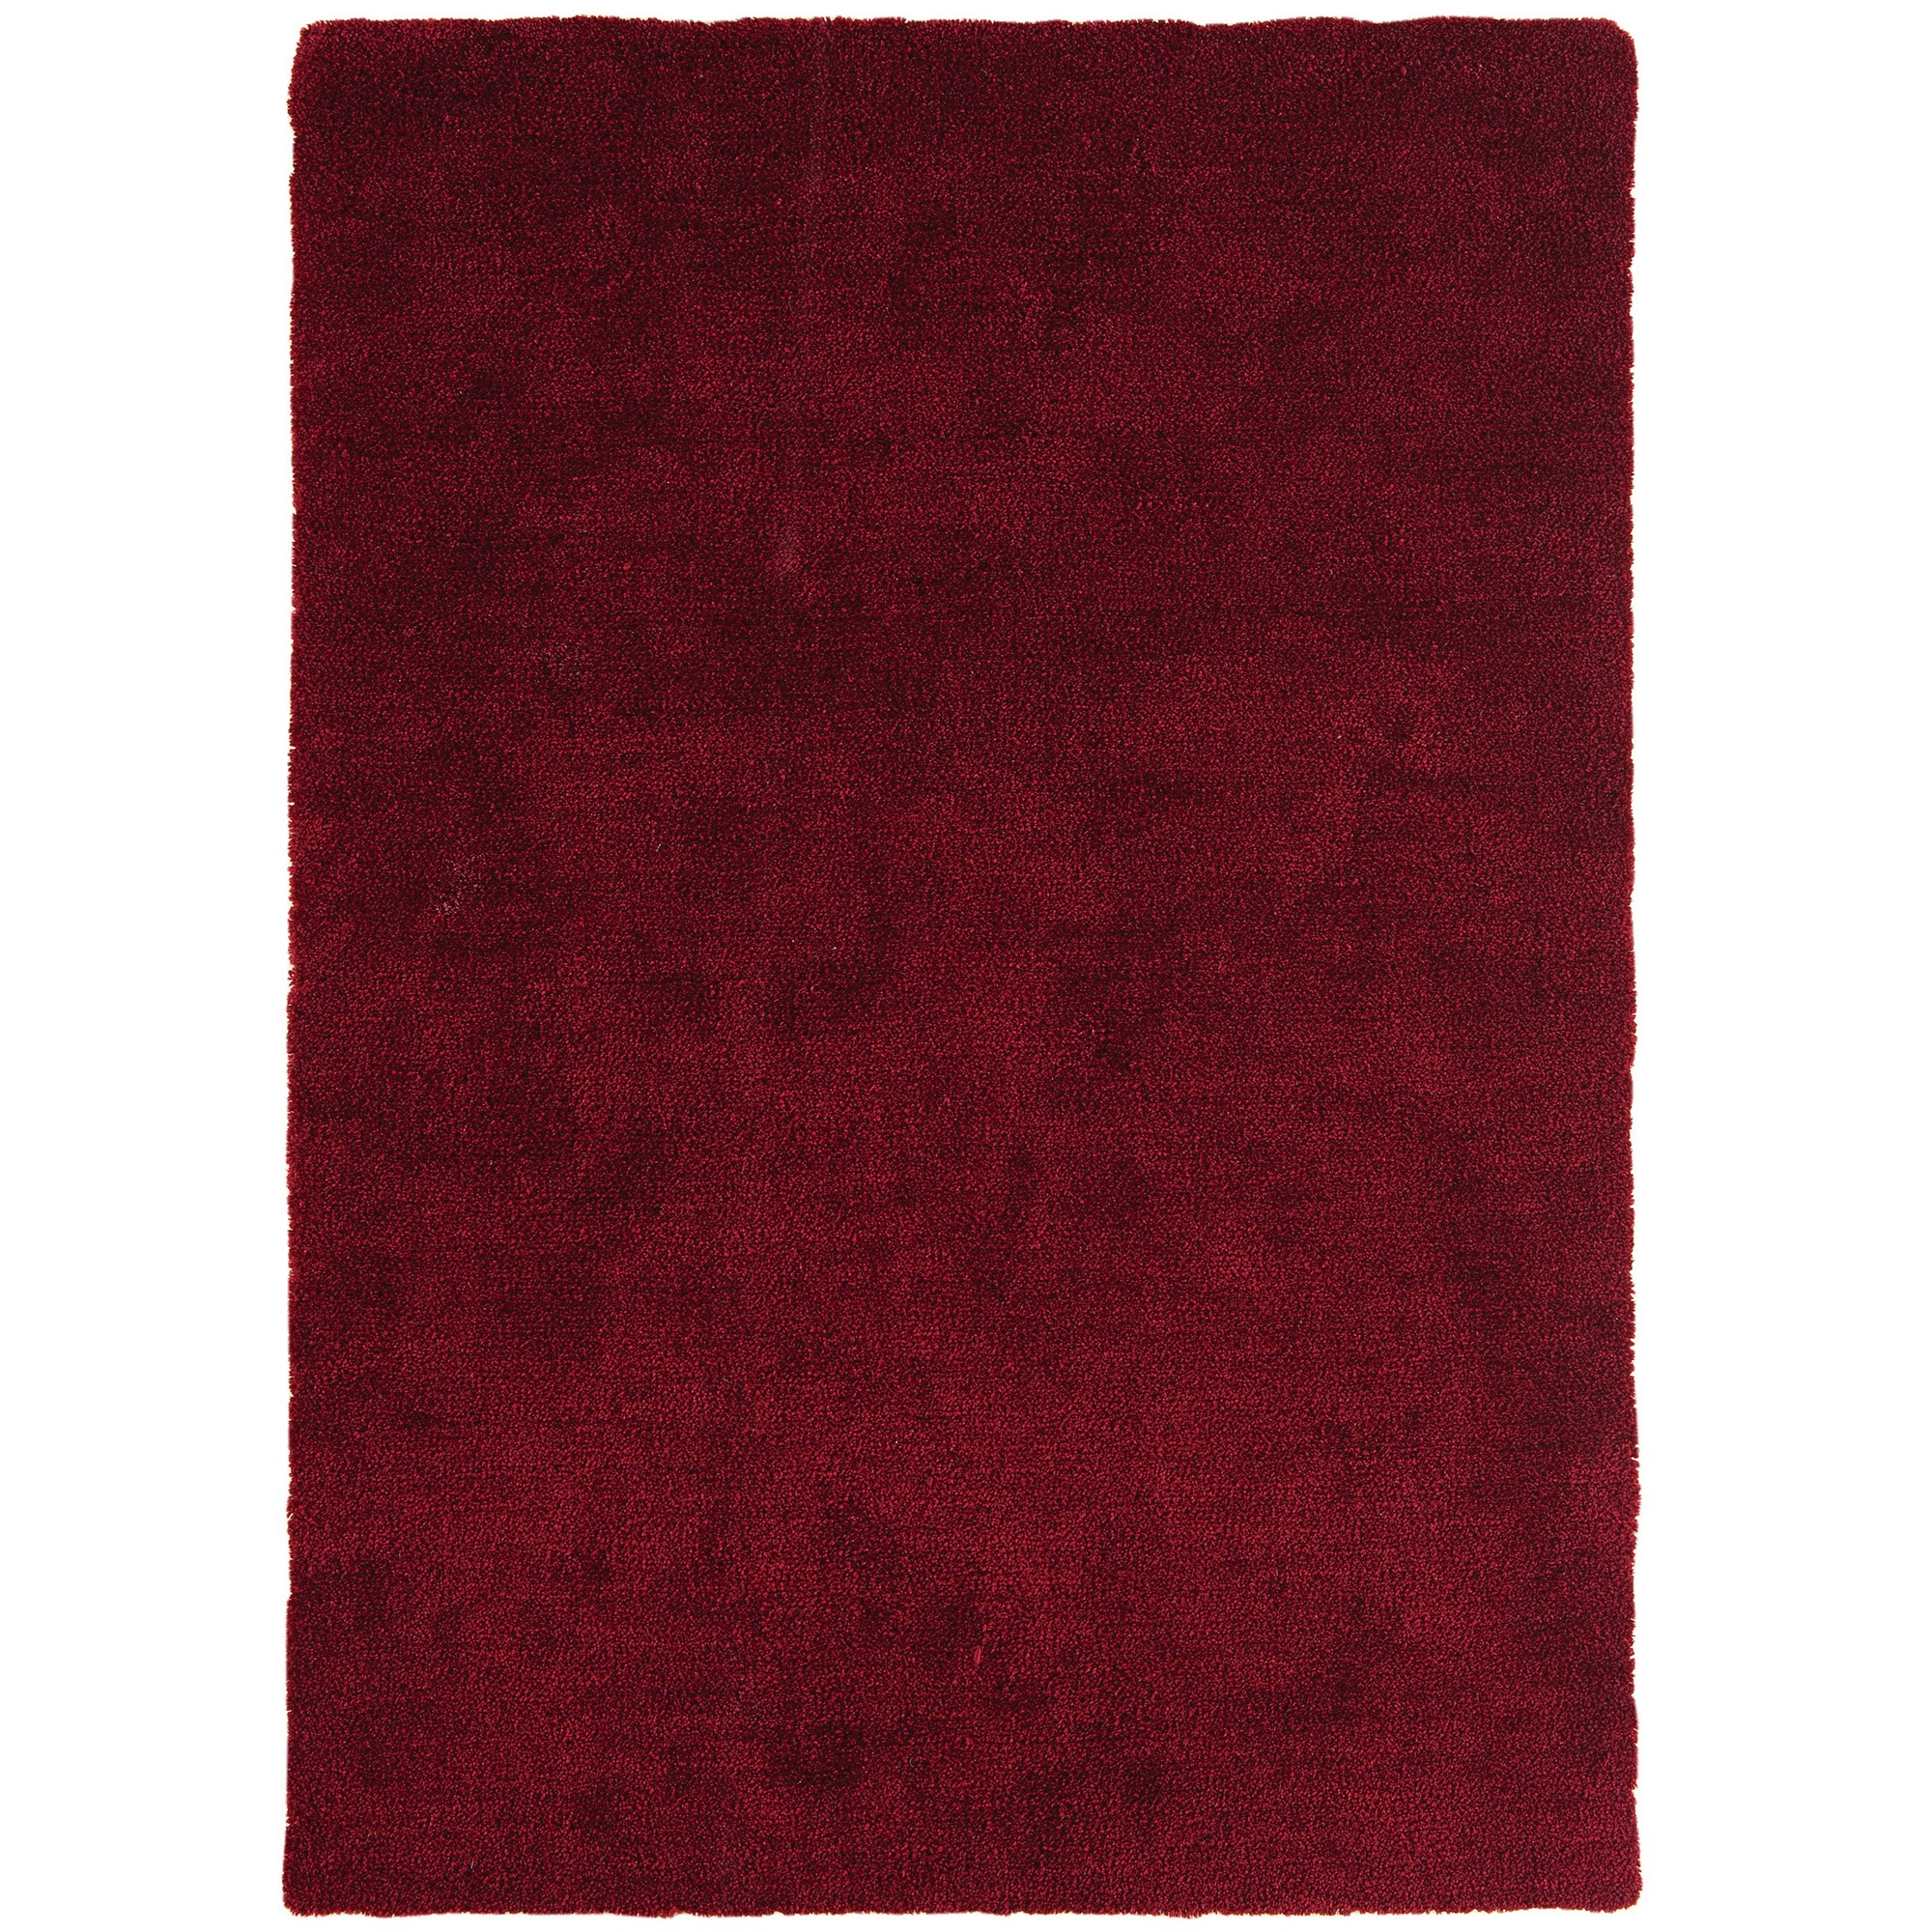 Tula Plain Rugs in Berry